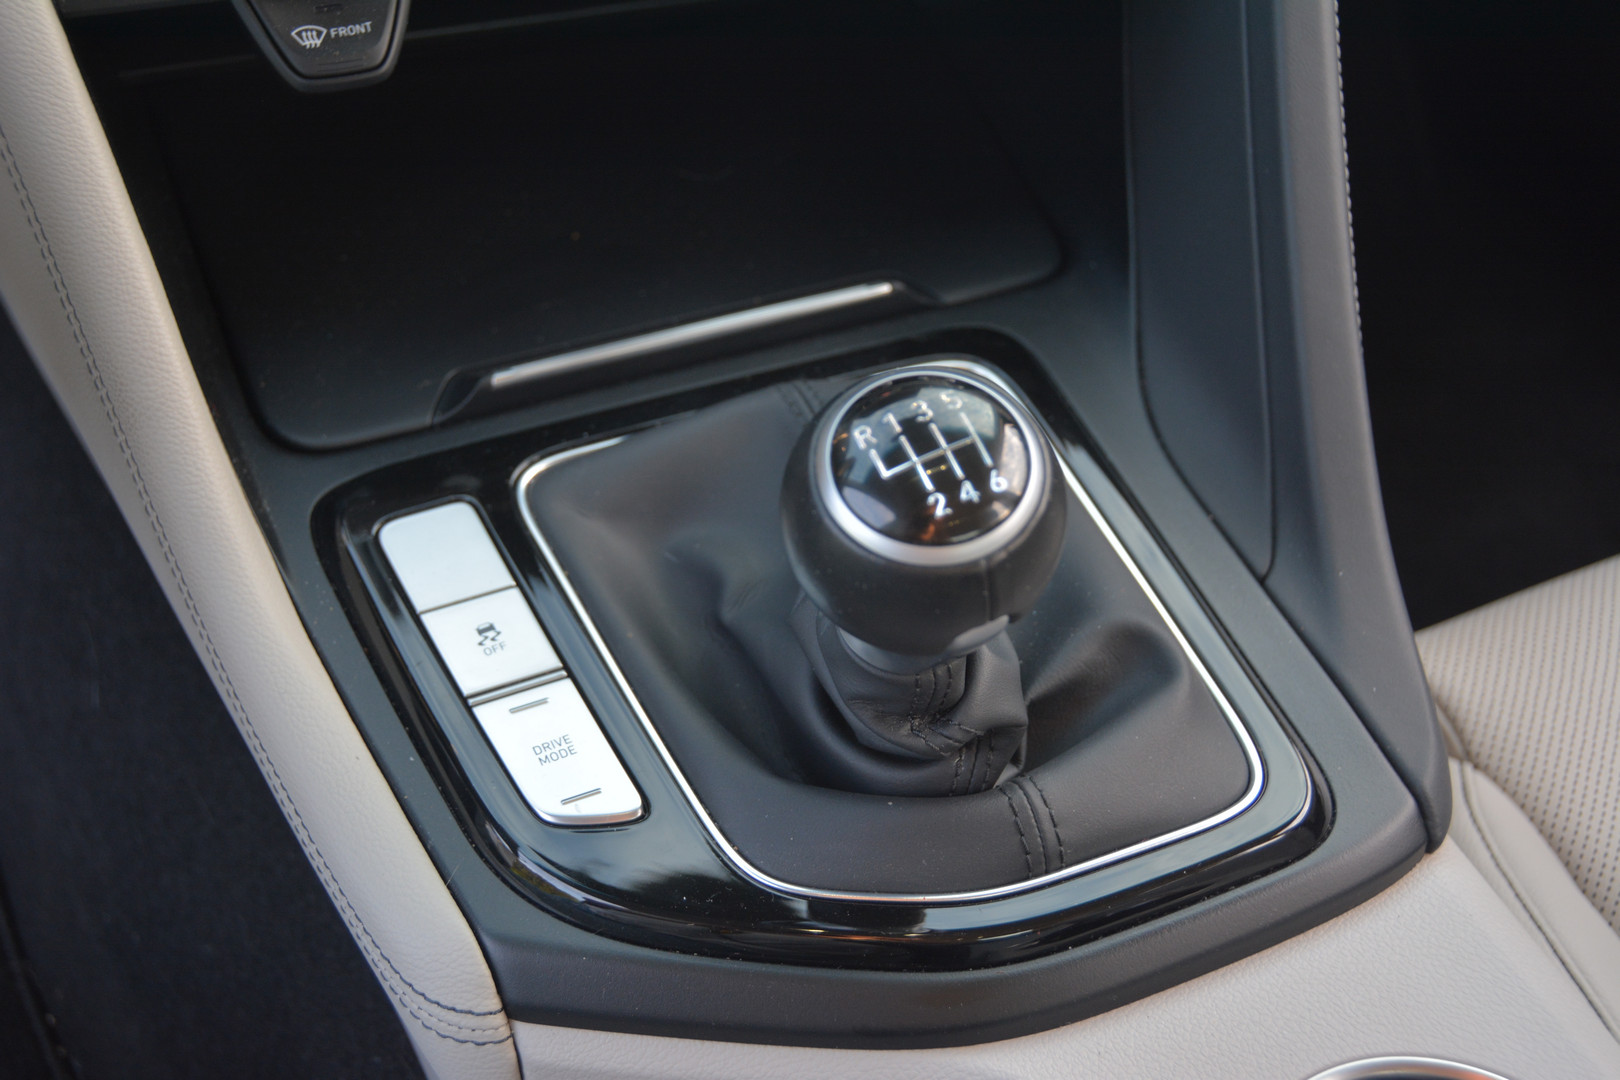 2019 Genesis G70 Manual Gear Shift